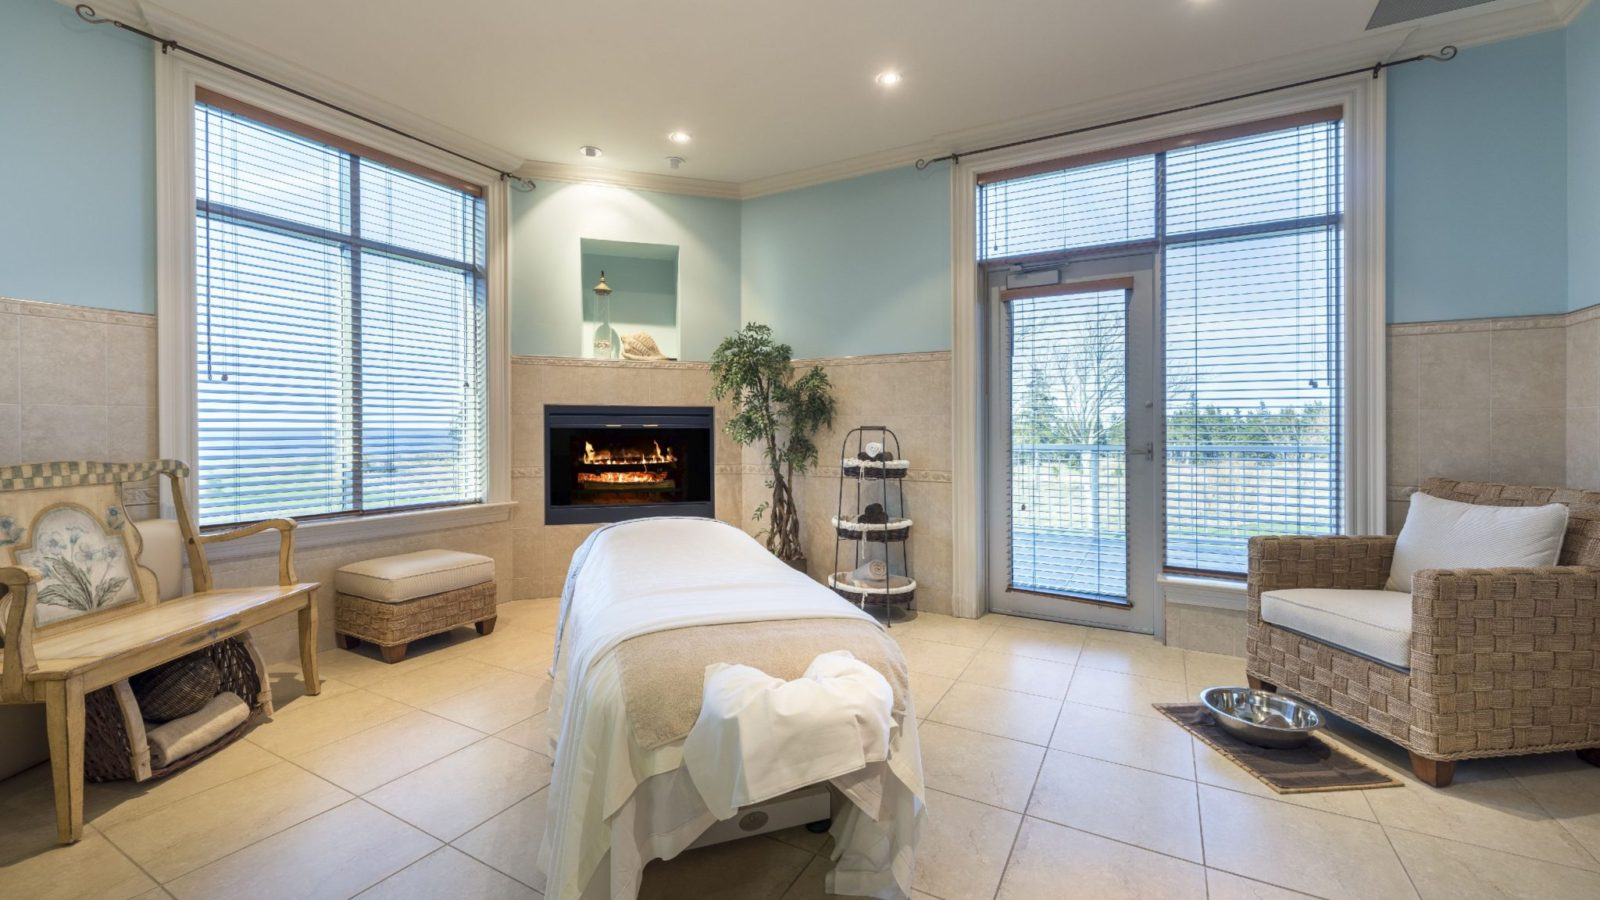 fox-harbr-resort-spa-treatment-room_38171529295_o